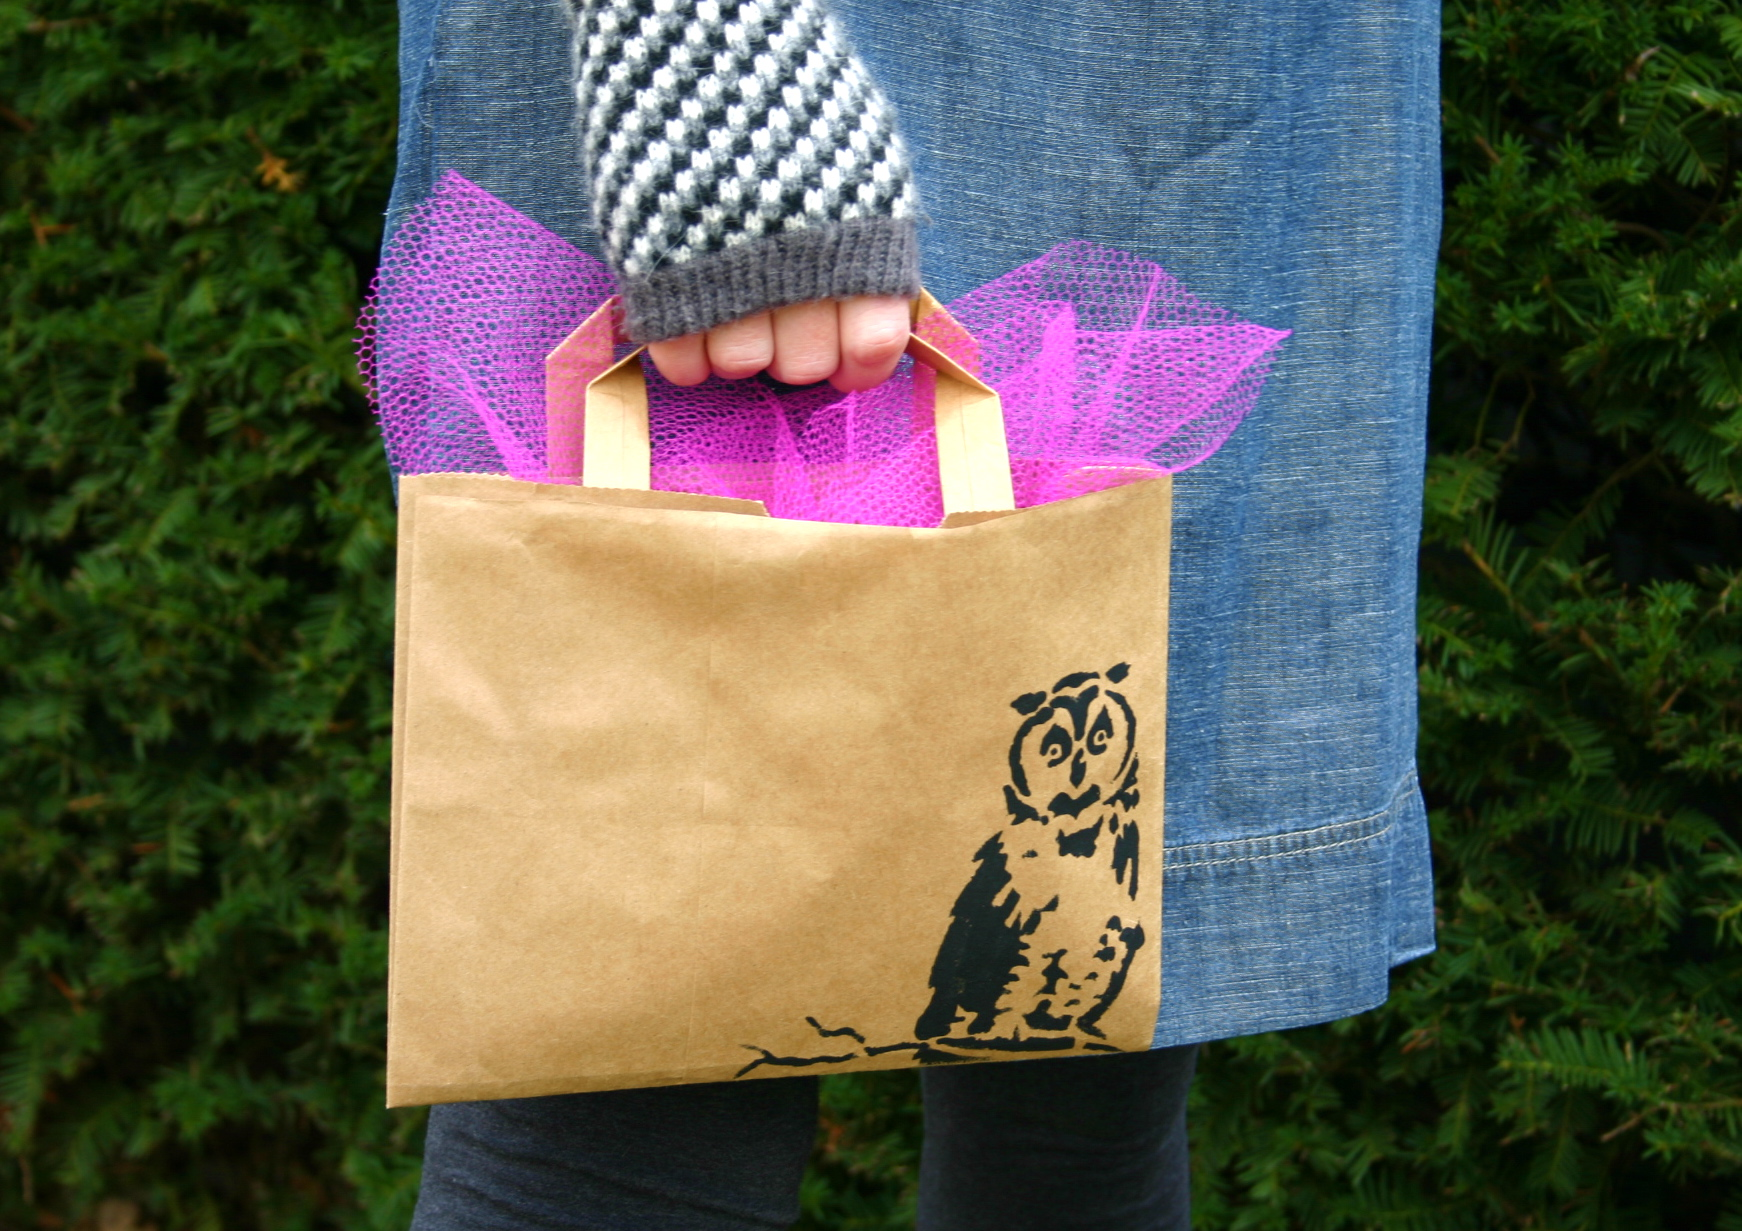 Make a quick gift bag out of a paper grocery bag.